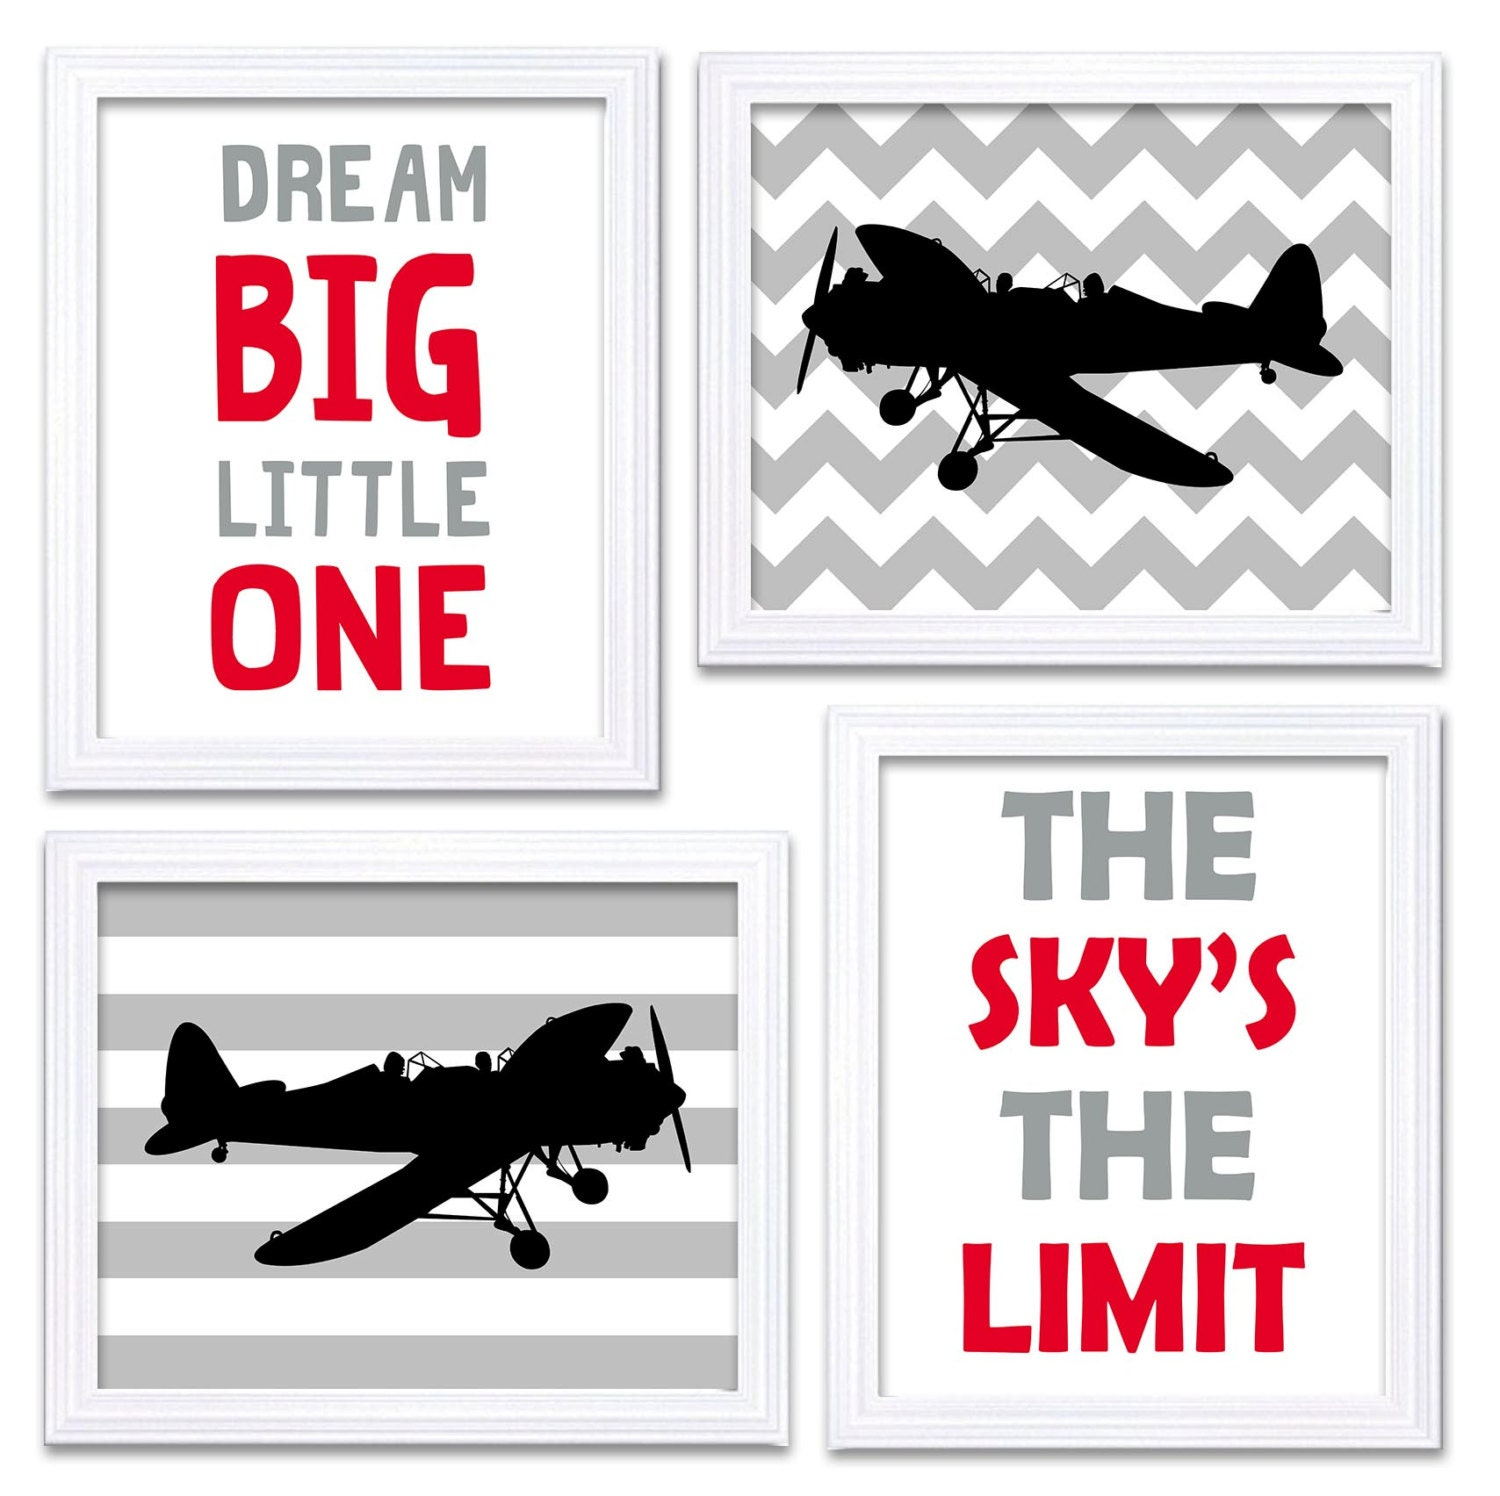 Airplane Nursery Art Red Black Grey Nursery Print Set of 4 Transportation Dream Big Little One The S